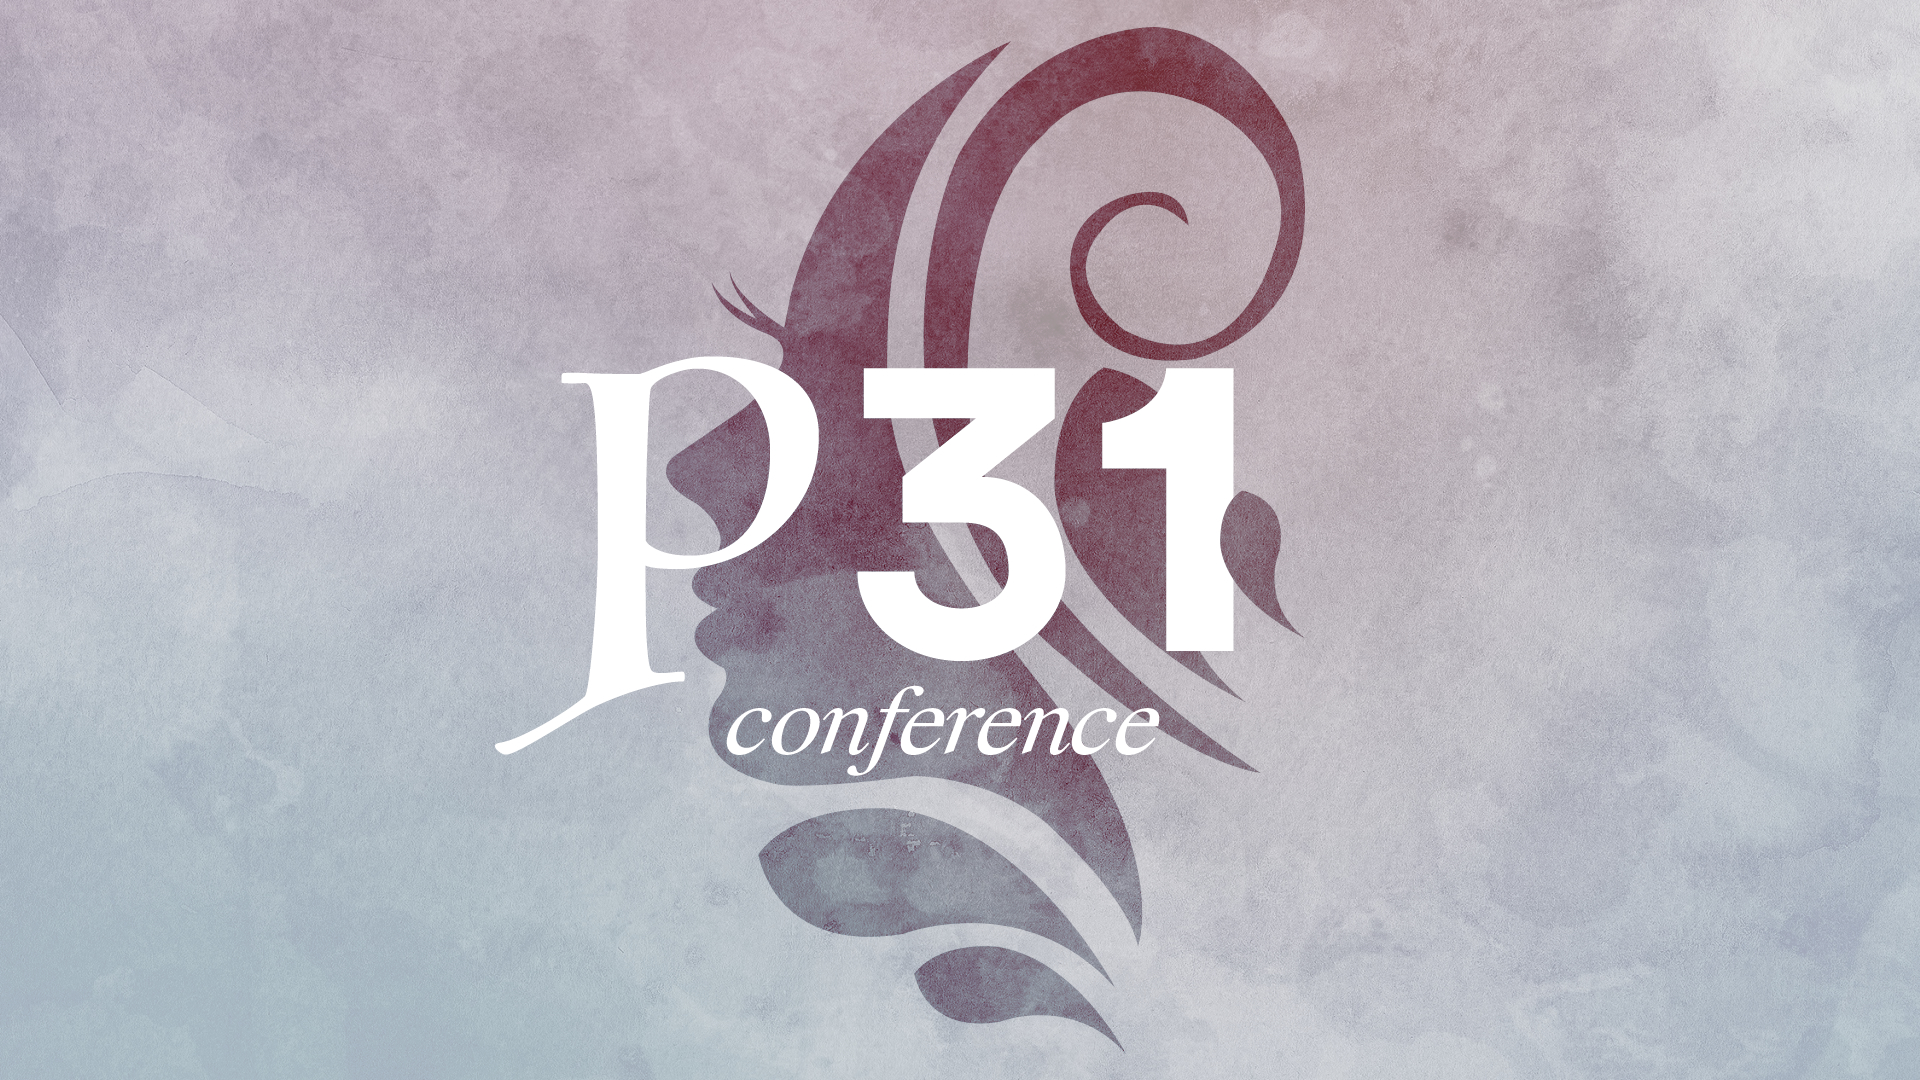 P31 Conference